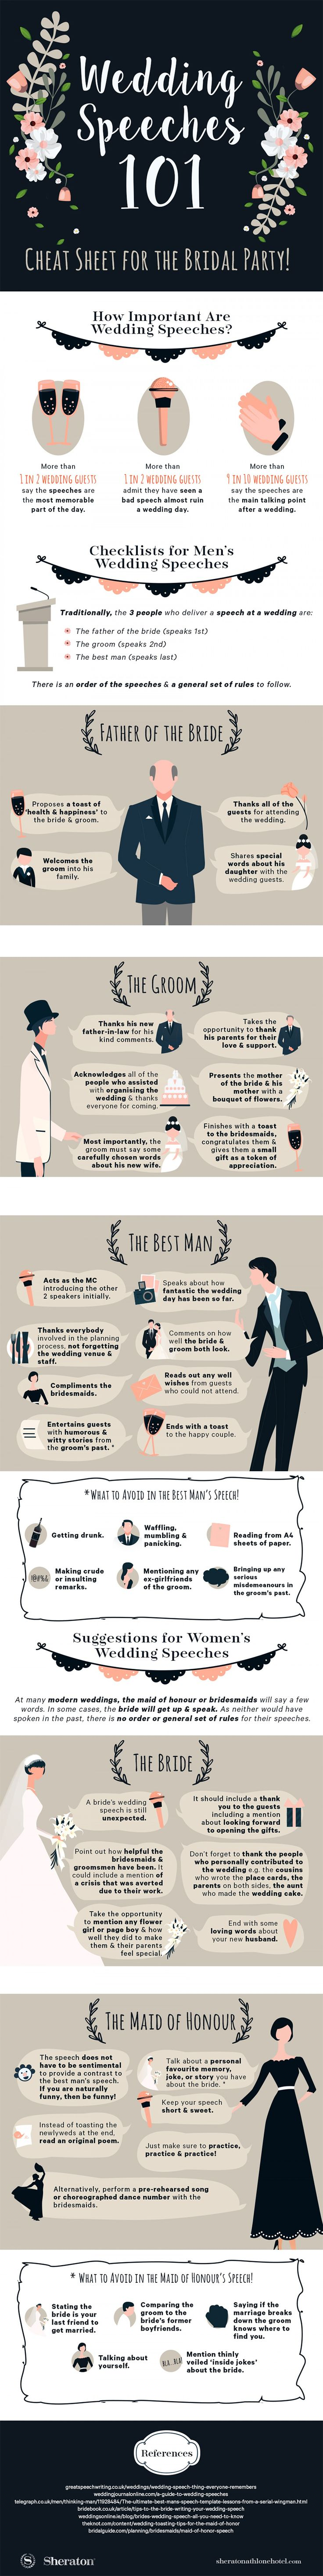 Wedding Speeches 101 A Cheat Sheet for the Bridal Party